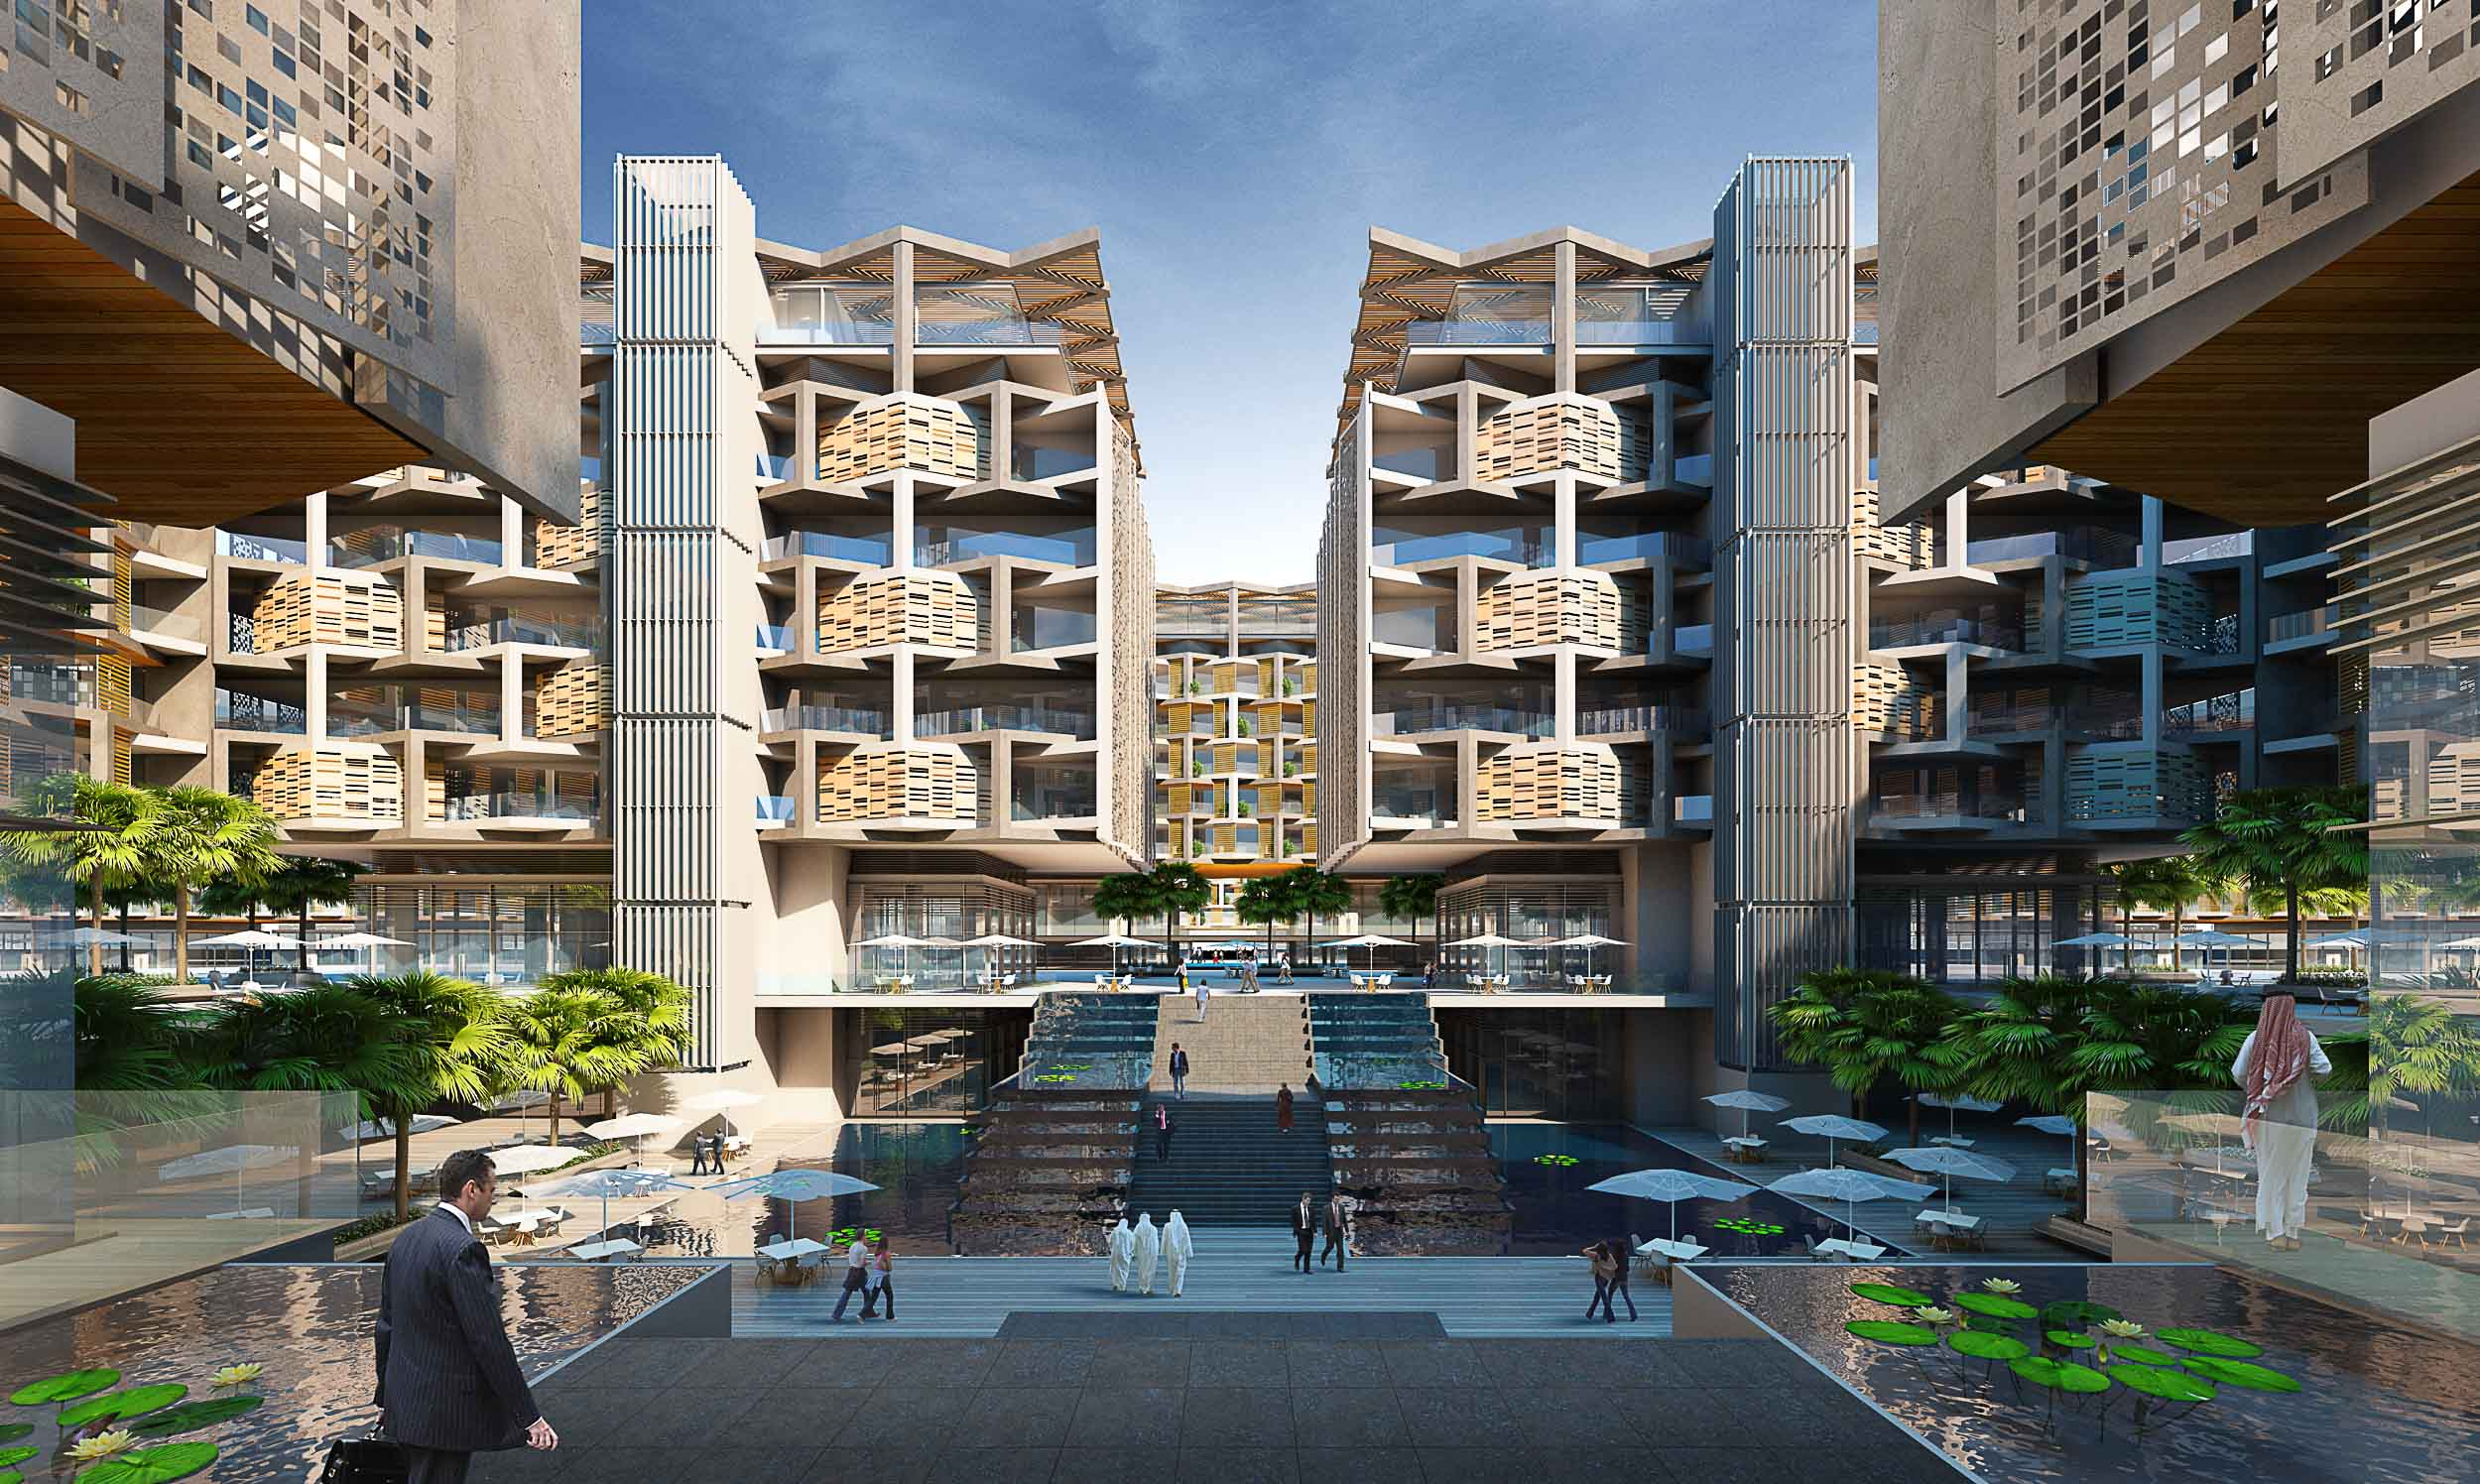 The urban oasis. Shaded courtyards form the heart of the fare inspired buildings creating relaxing gardens for local residents. Modern architecture, middle eastern vernacular design.